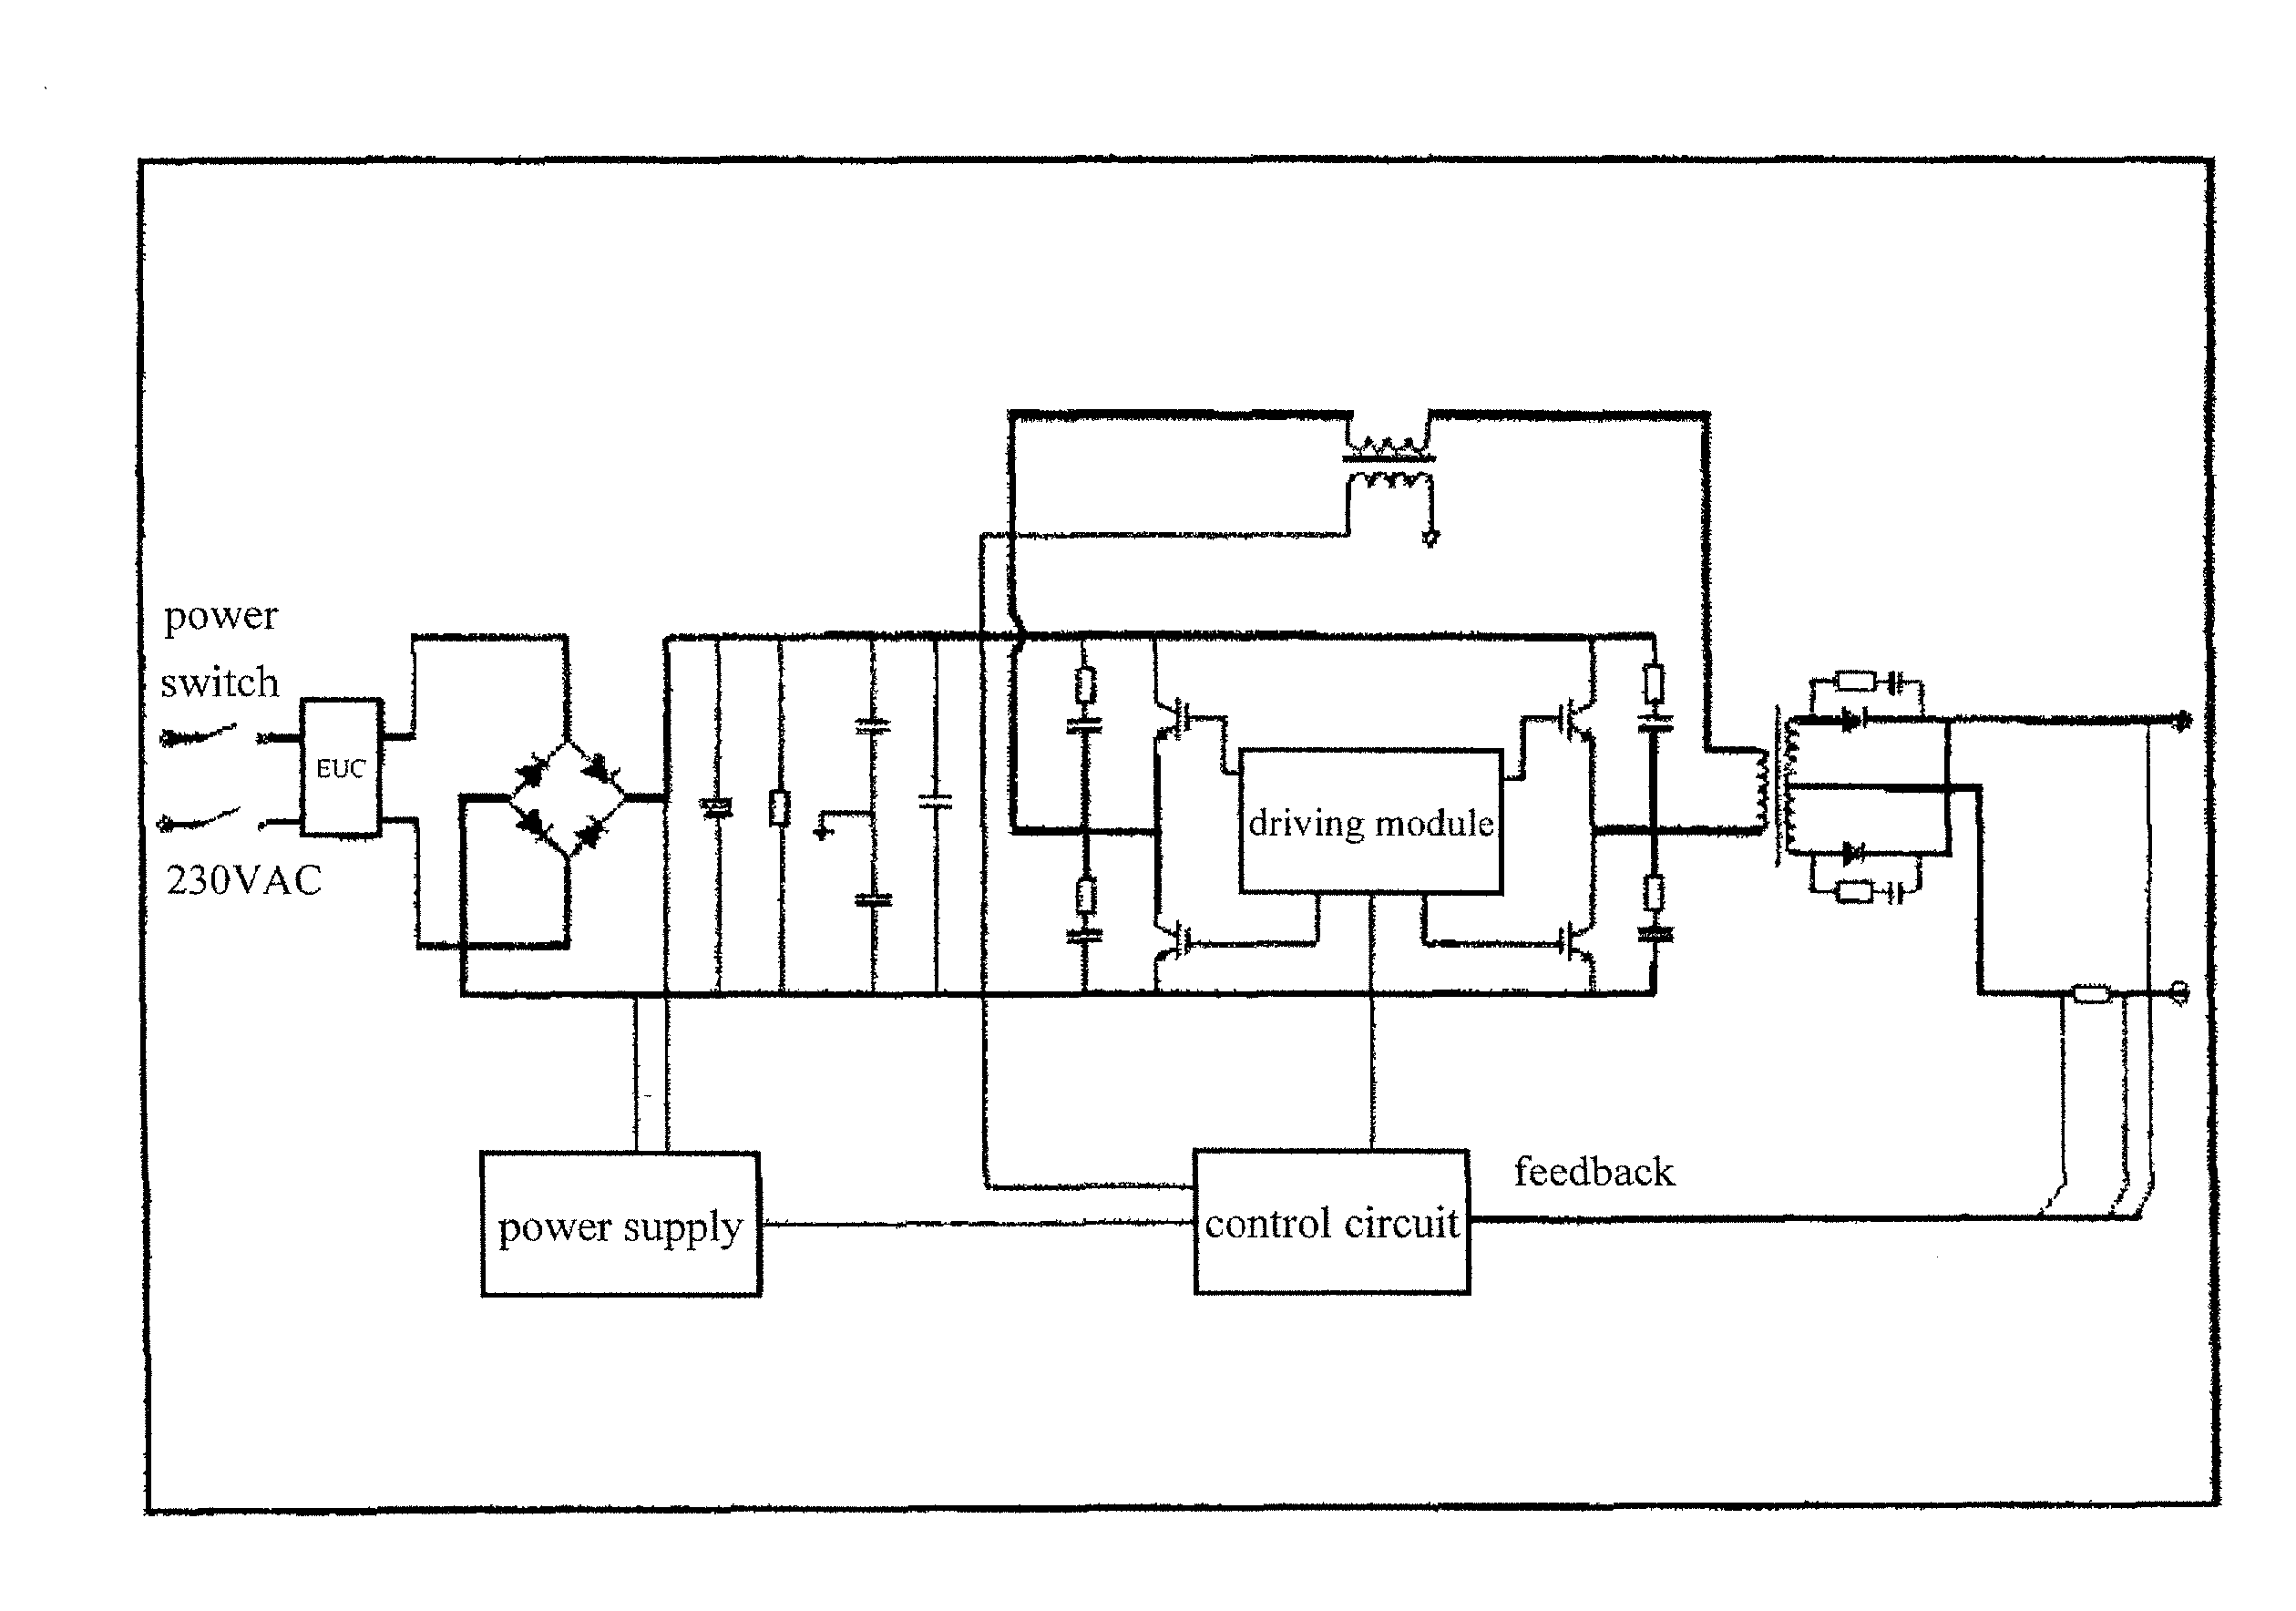 Welding Machine Schematic Diagram 33 Wiring Images Diy Ldr Switch Circuits Controlcircuit Circuit Seekic Us20140209586a1 20140731 D00000 Patent Us20140209586 Portable Igbt Arc Google At